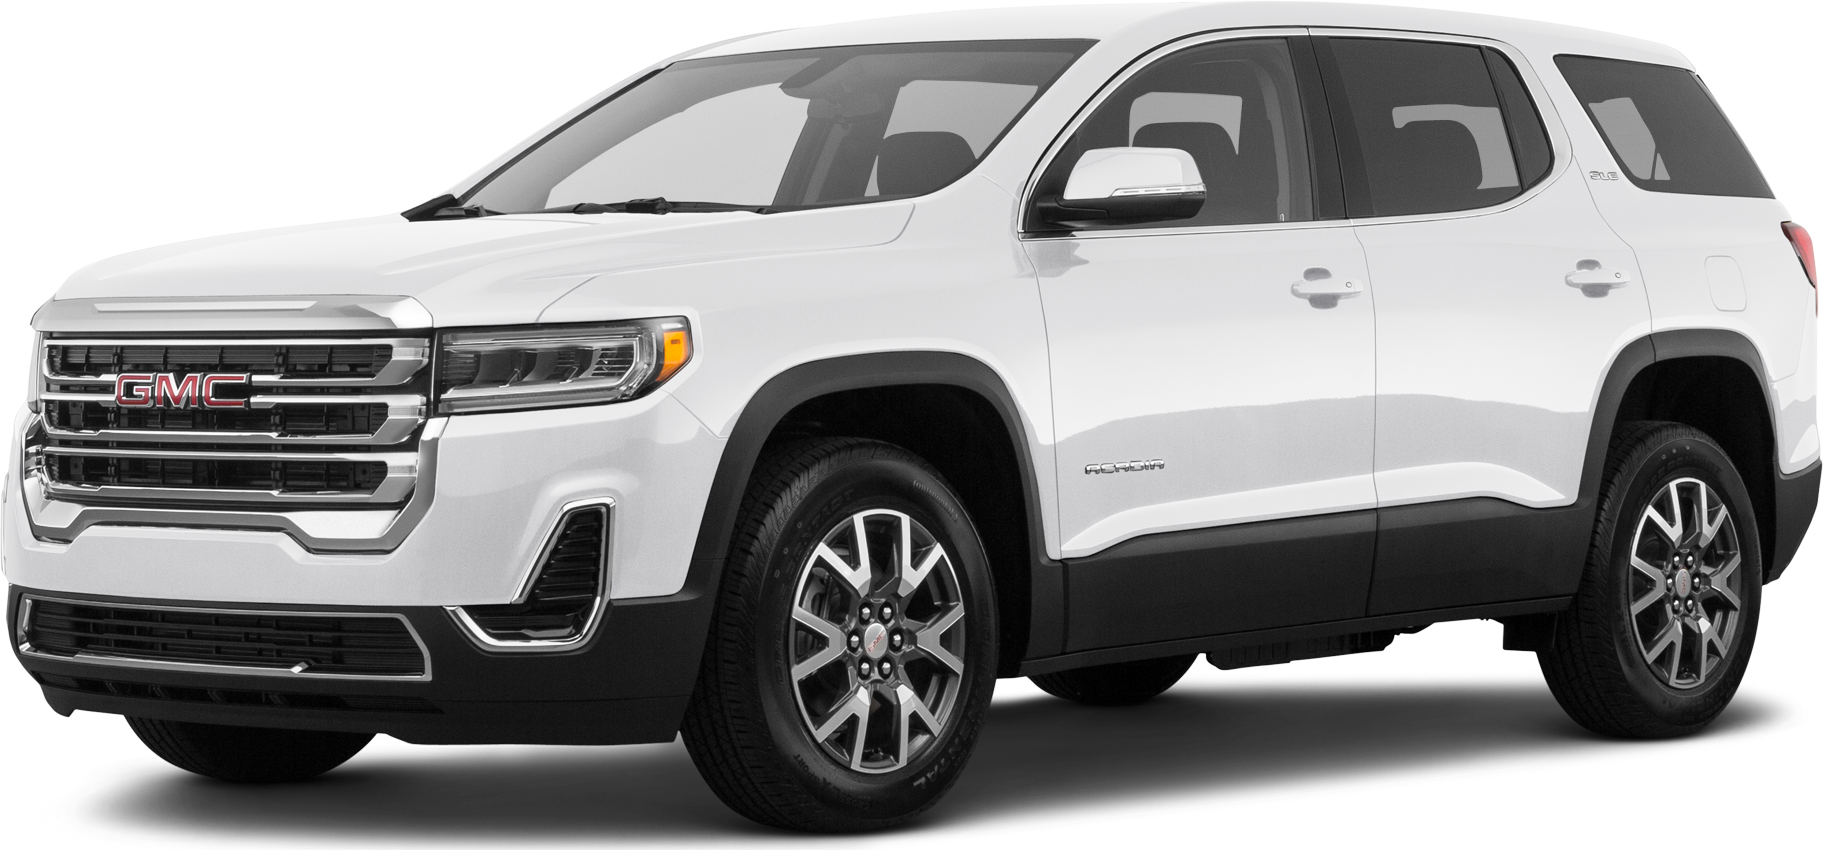 2020 Gmc Acadia Consumer Reviews Kelley Blue Book